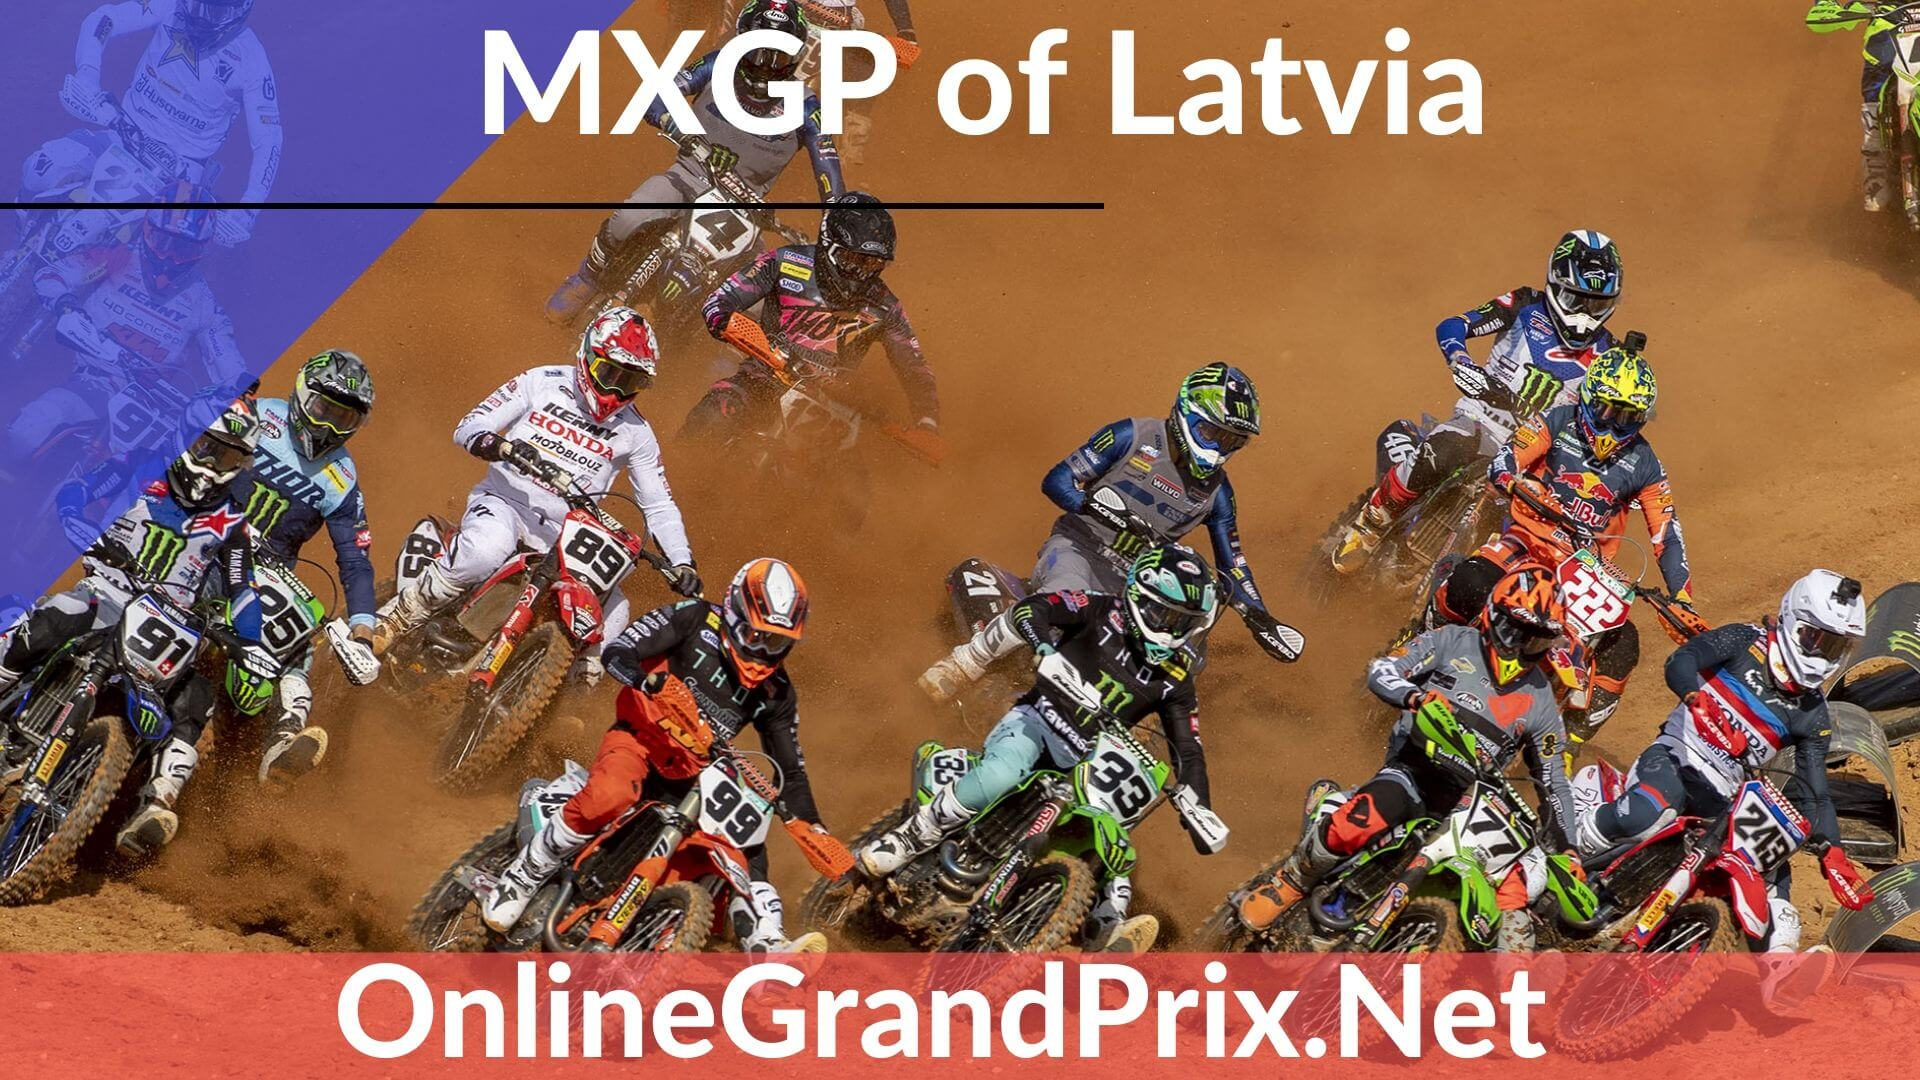 Latvia MXGP Live Stream 2020 | FIM MotoCross WC